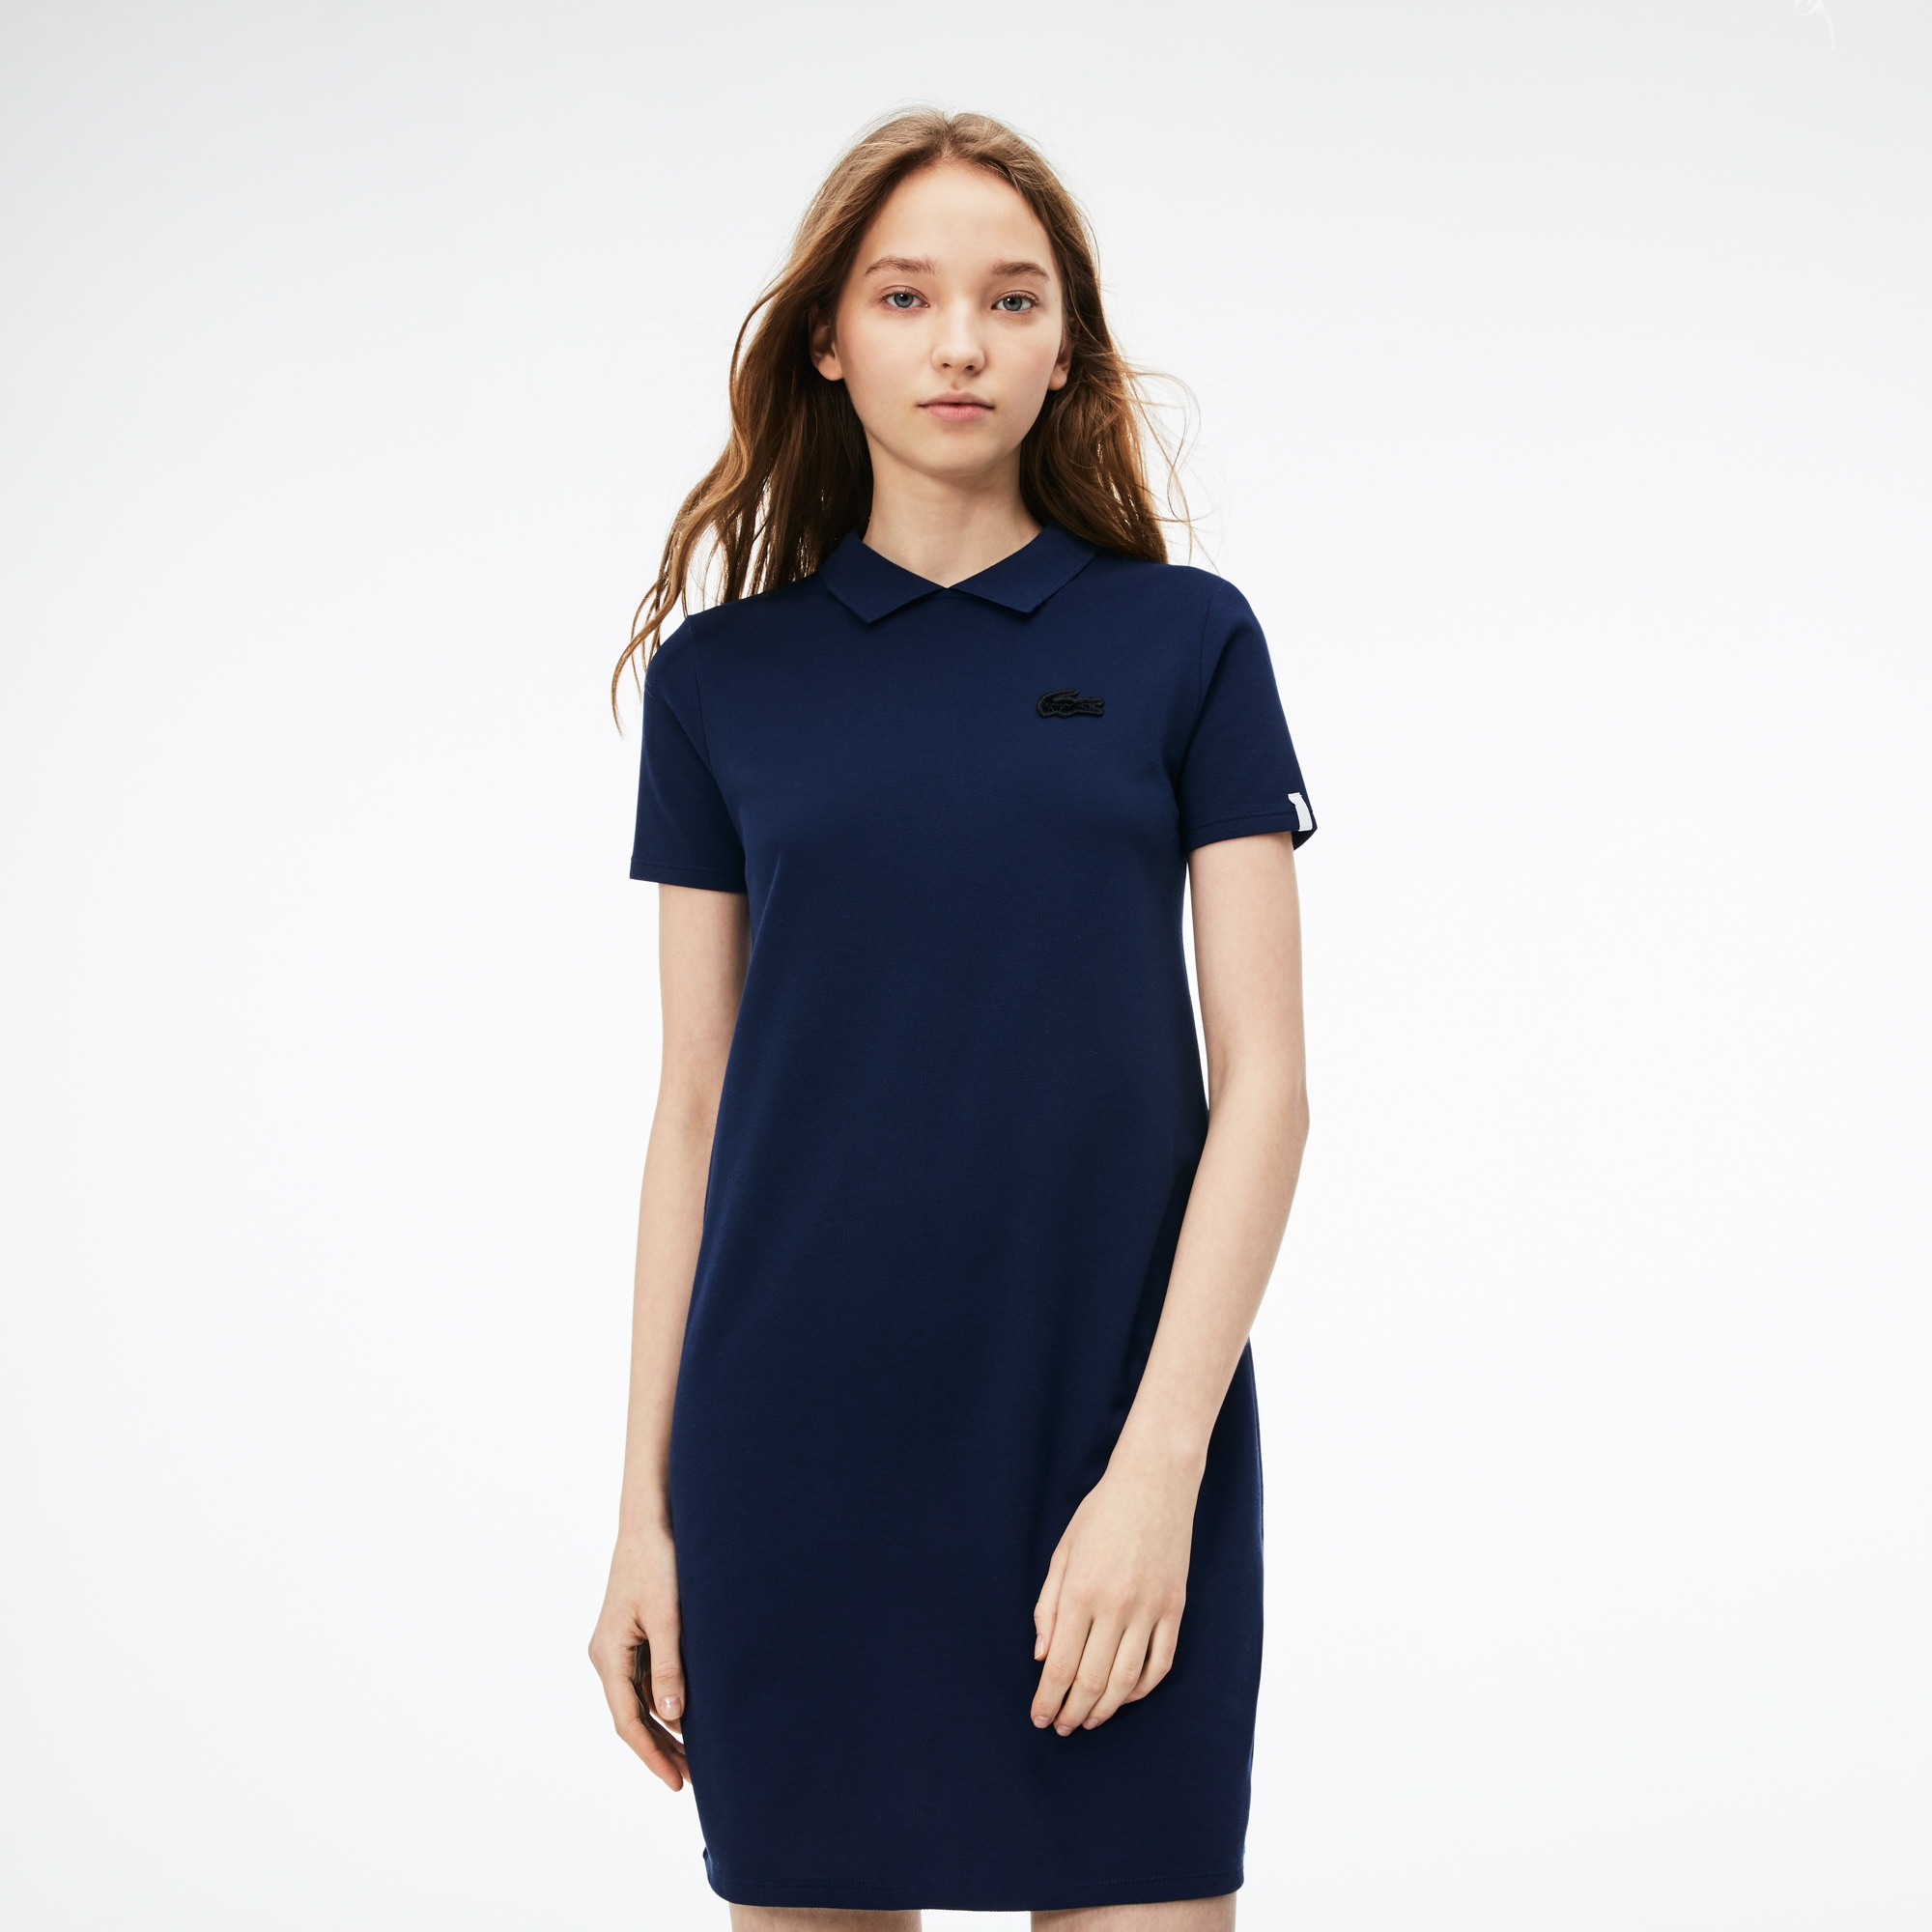 d66fa31402 + 2 colors. 50% off. Women's Lacoste LIVE Back Opening Stretch Mini Piqué  Polo Dress